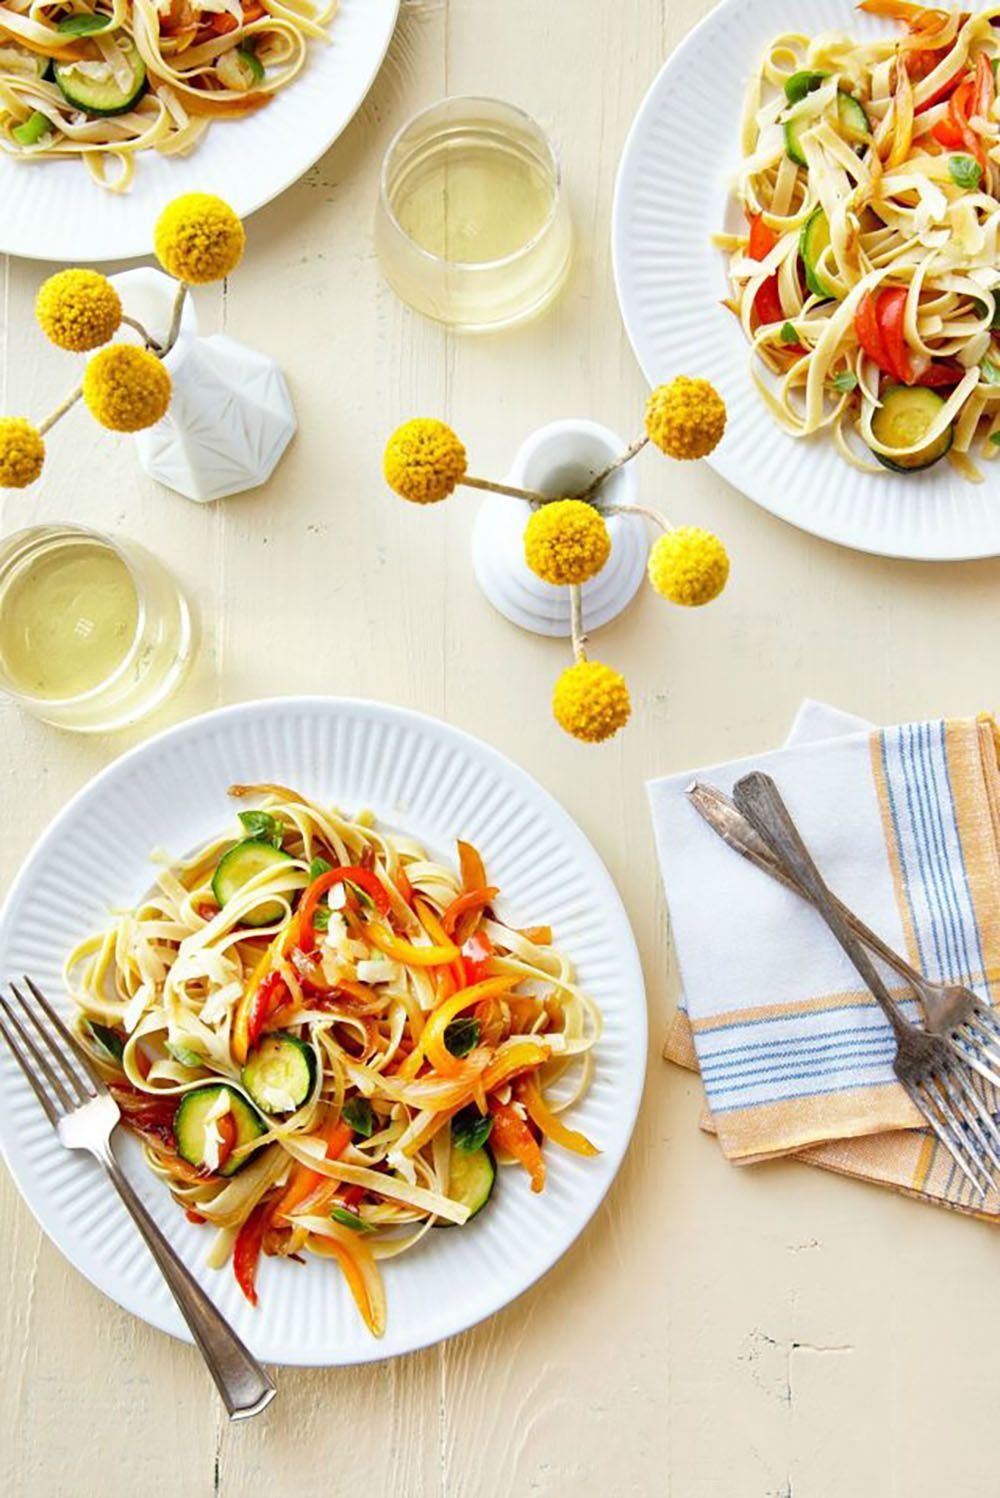 25 Healthy Pasta Recipes - Light Pasta Dinner Ideas